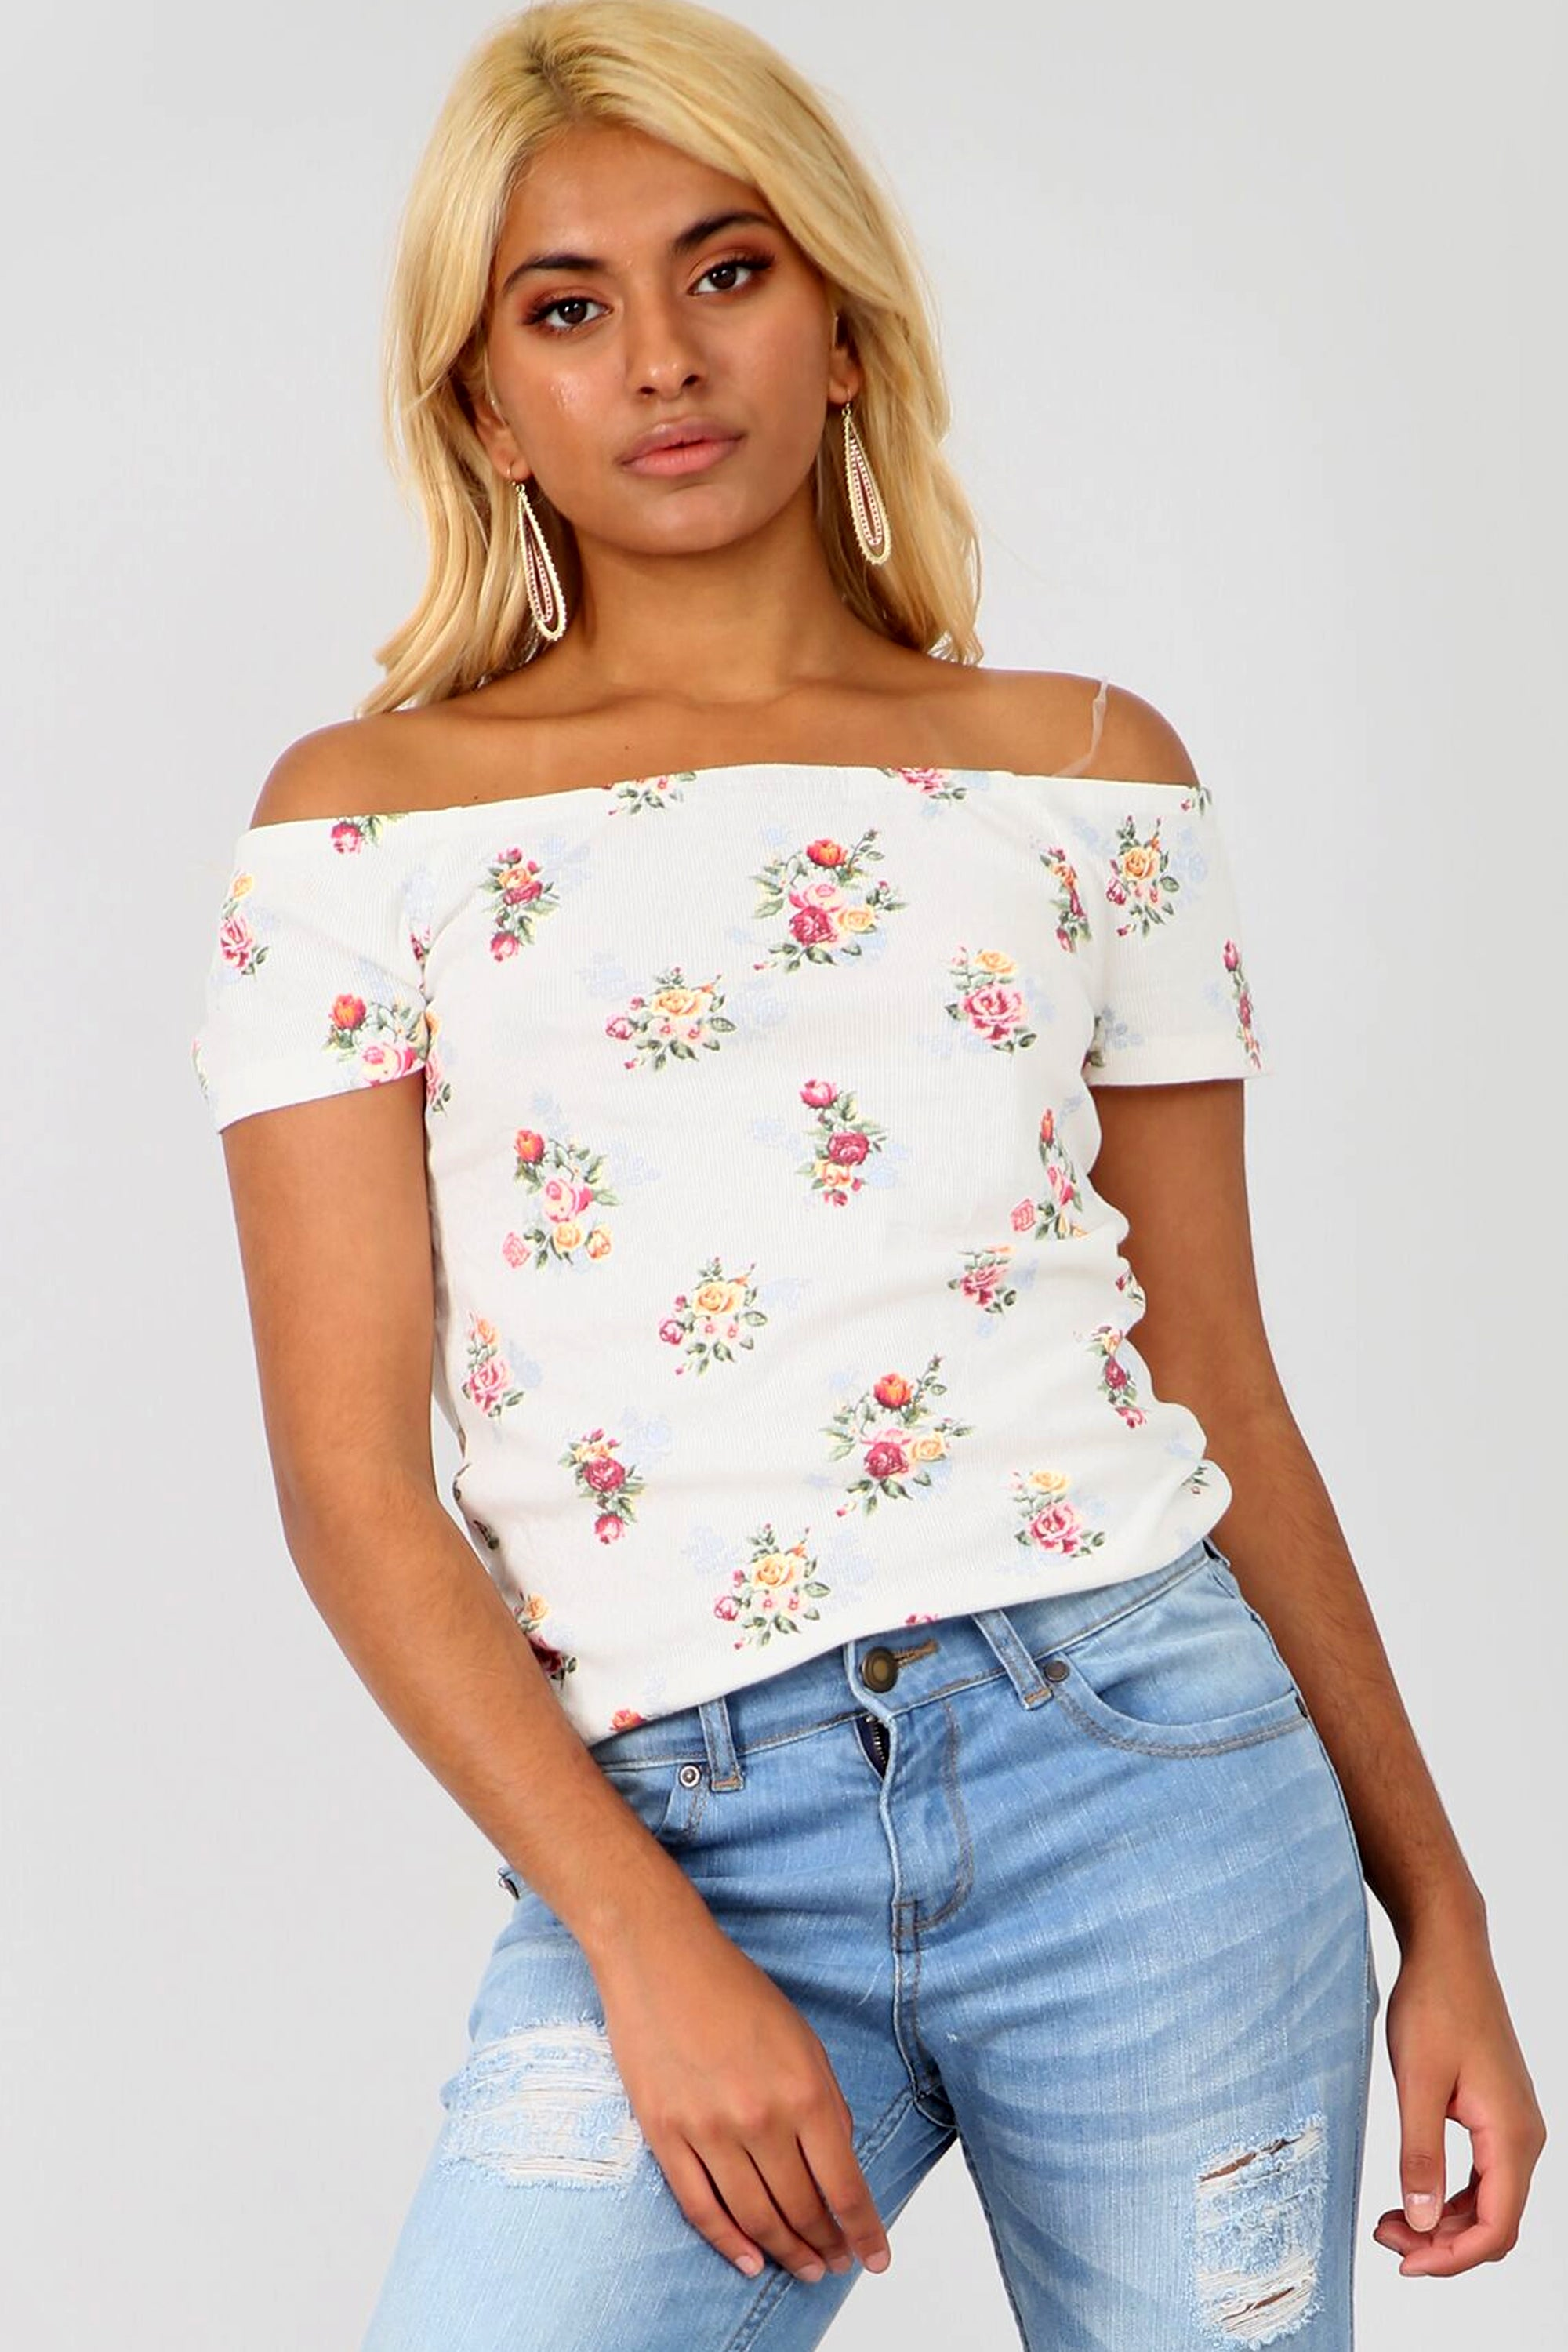 Bardot Cream Floral Ribbed Knit Top - bejealous-com